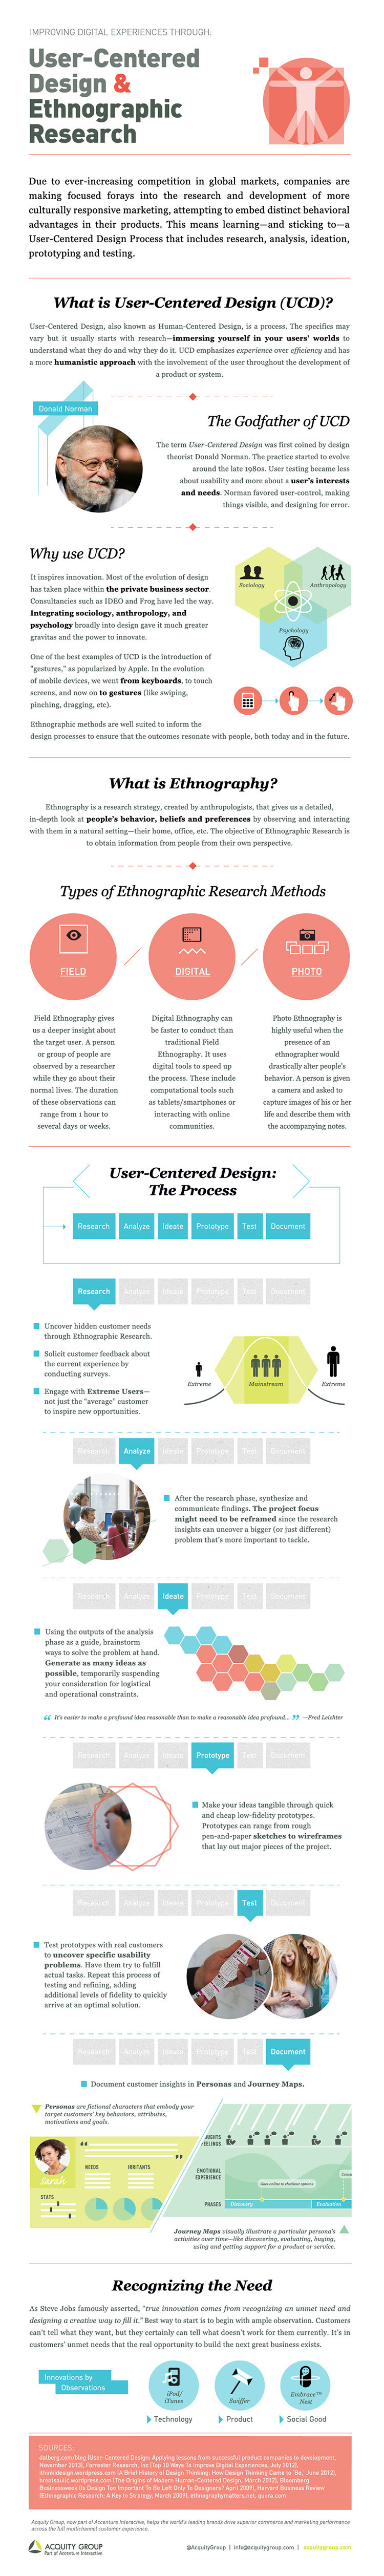 Infographic: User-Centered Design and Ethnographic Research